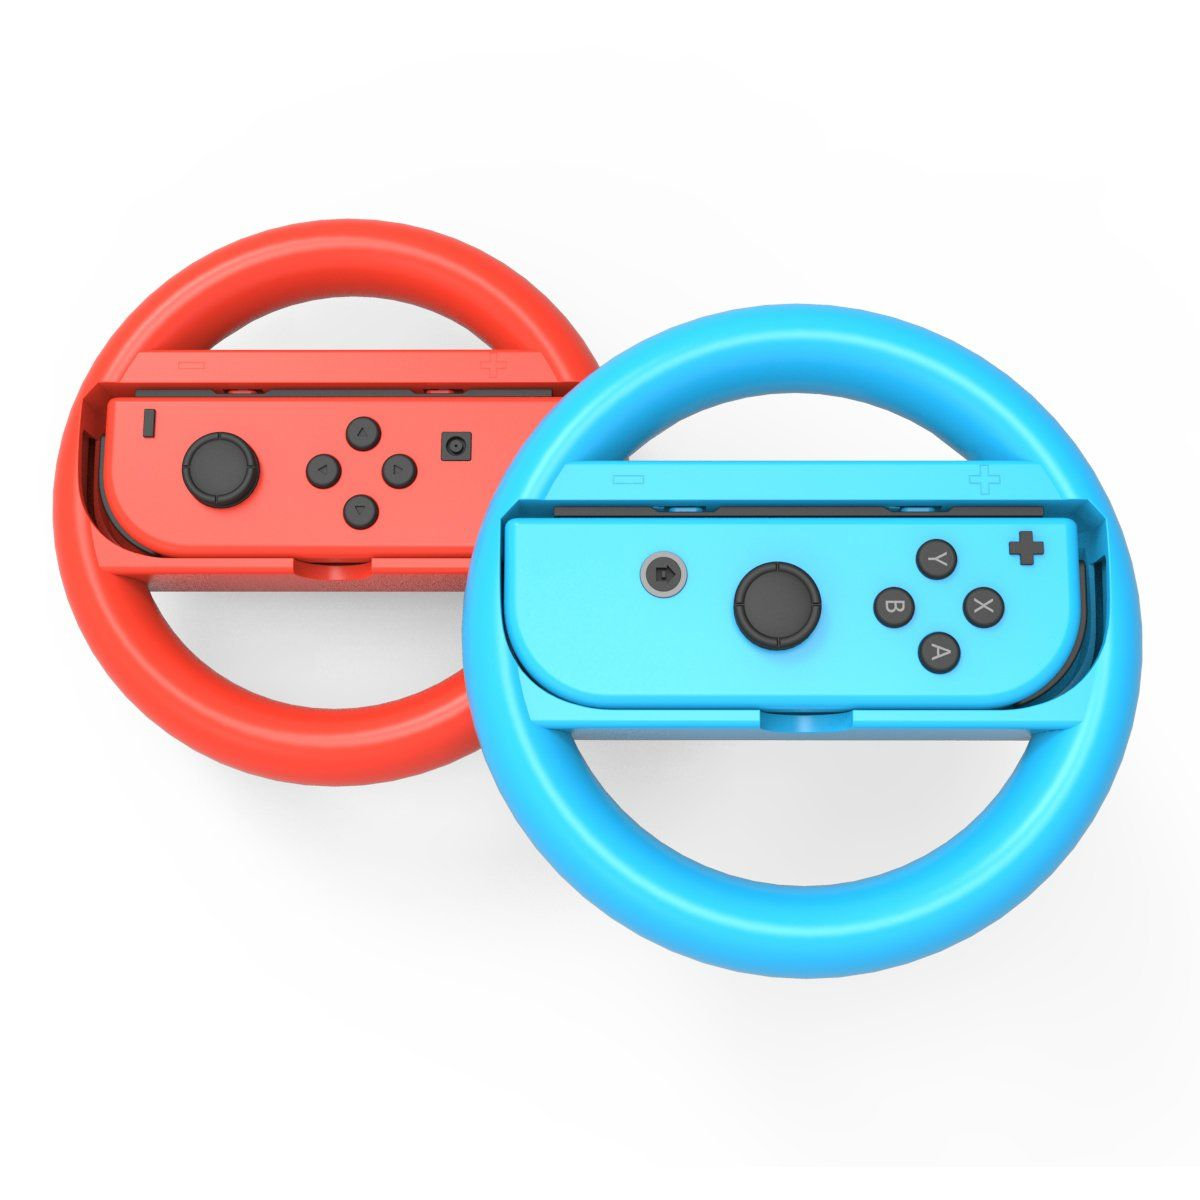 Gh Switch Steering Wheel For Mario Kart 8 Deluxe Switch Racing